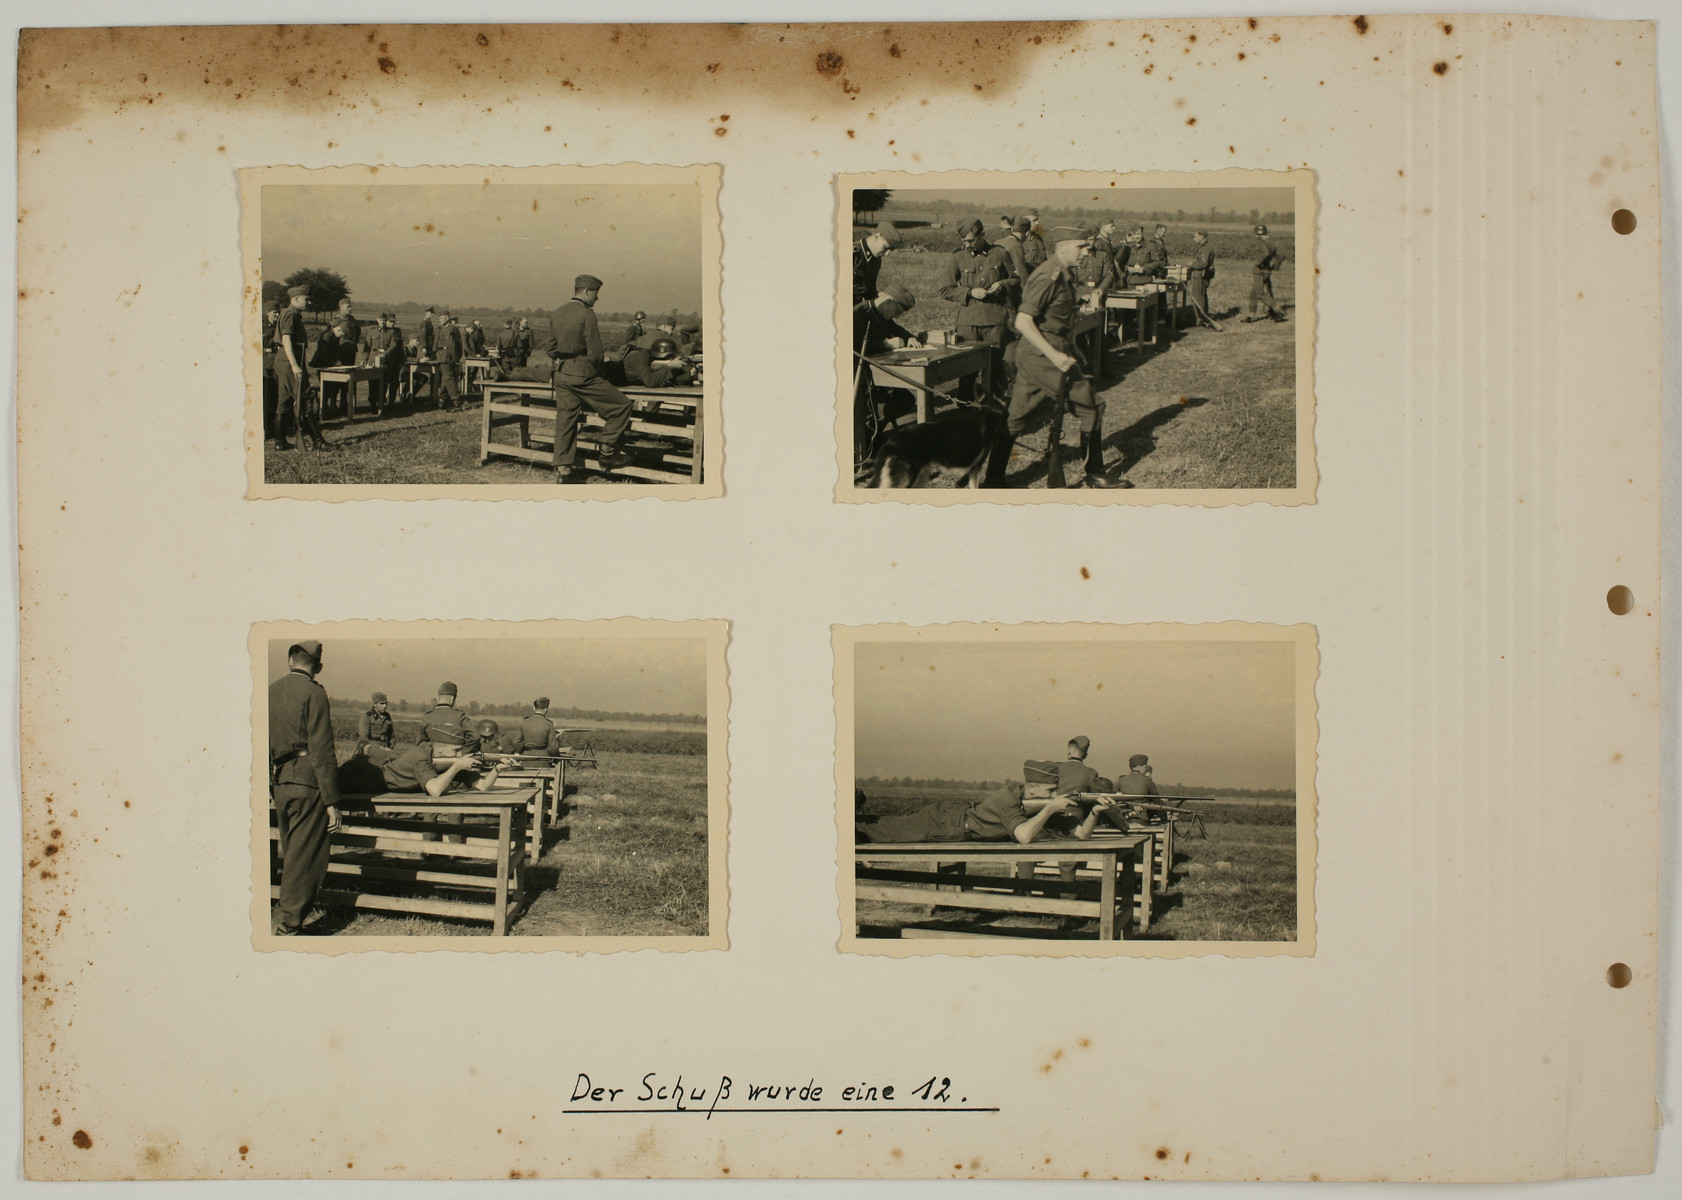 """One page from an album created by adjutant to the commandant Karl Hoecker, depicting SS activities in and around the Auschwitz concentration camp.  The original caption reads """"The shot was a 12."""""""